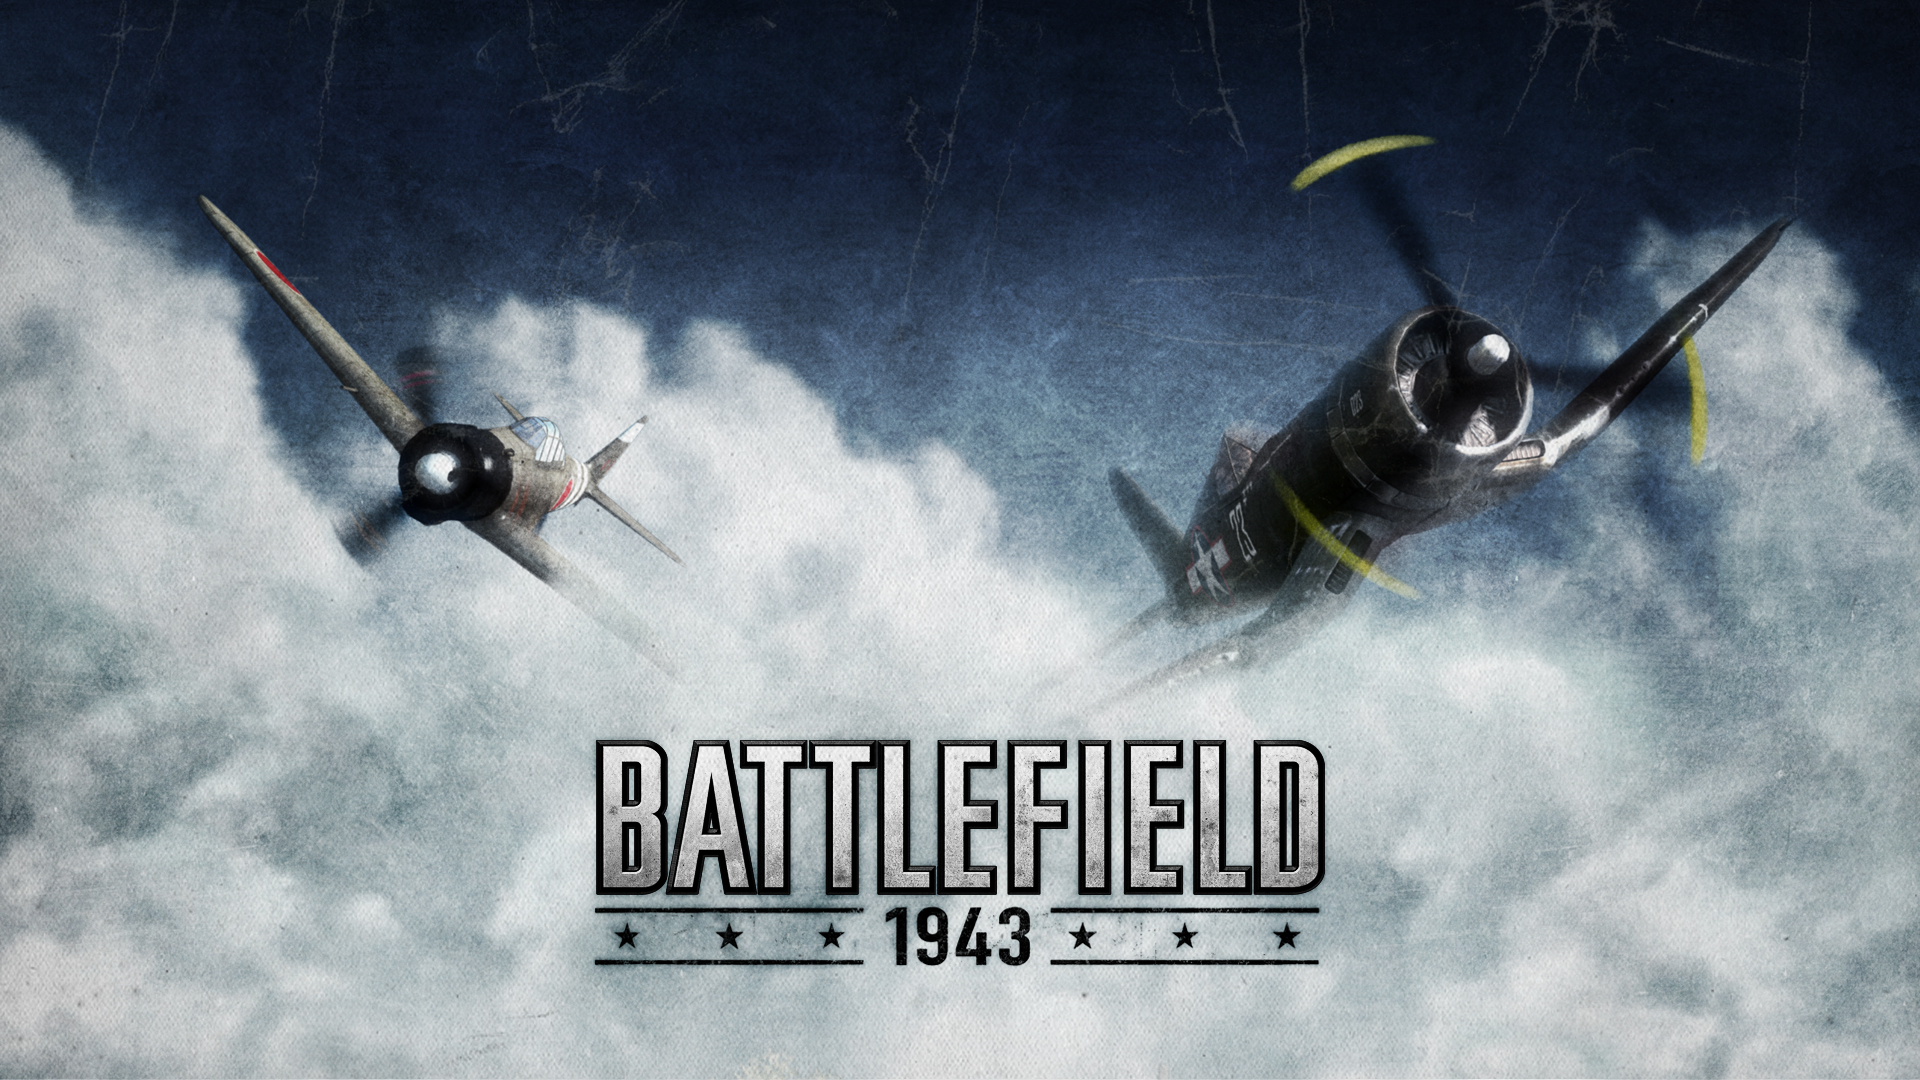 Battlefield 1943 - Twin Planes Wallpapers